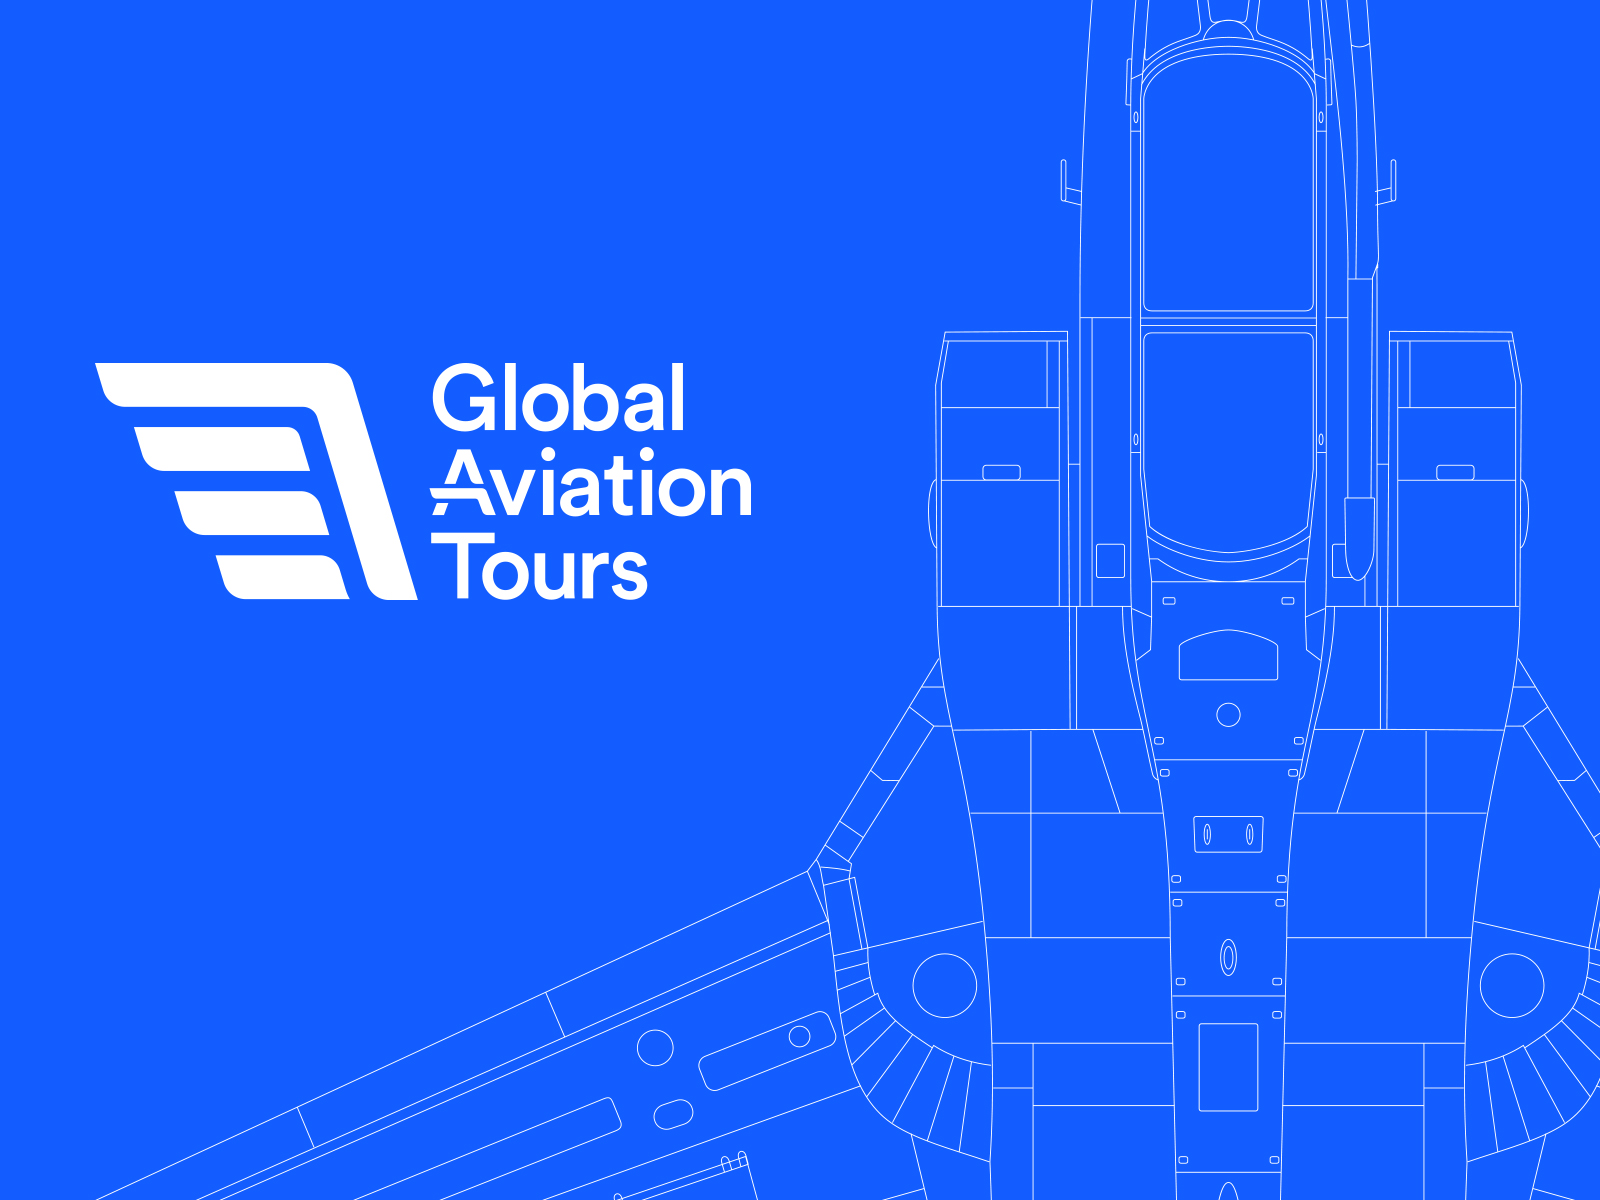 Global Aviation Tours - Branding